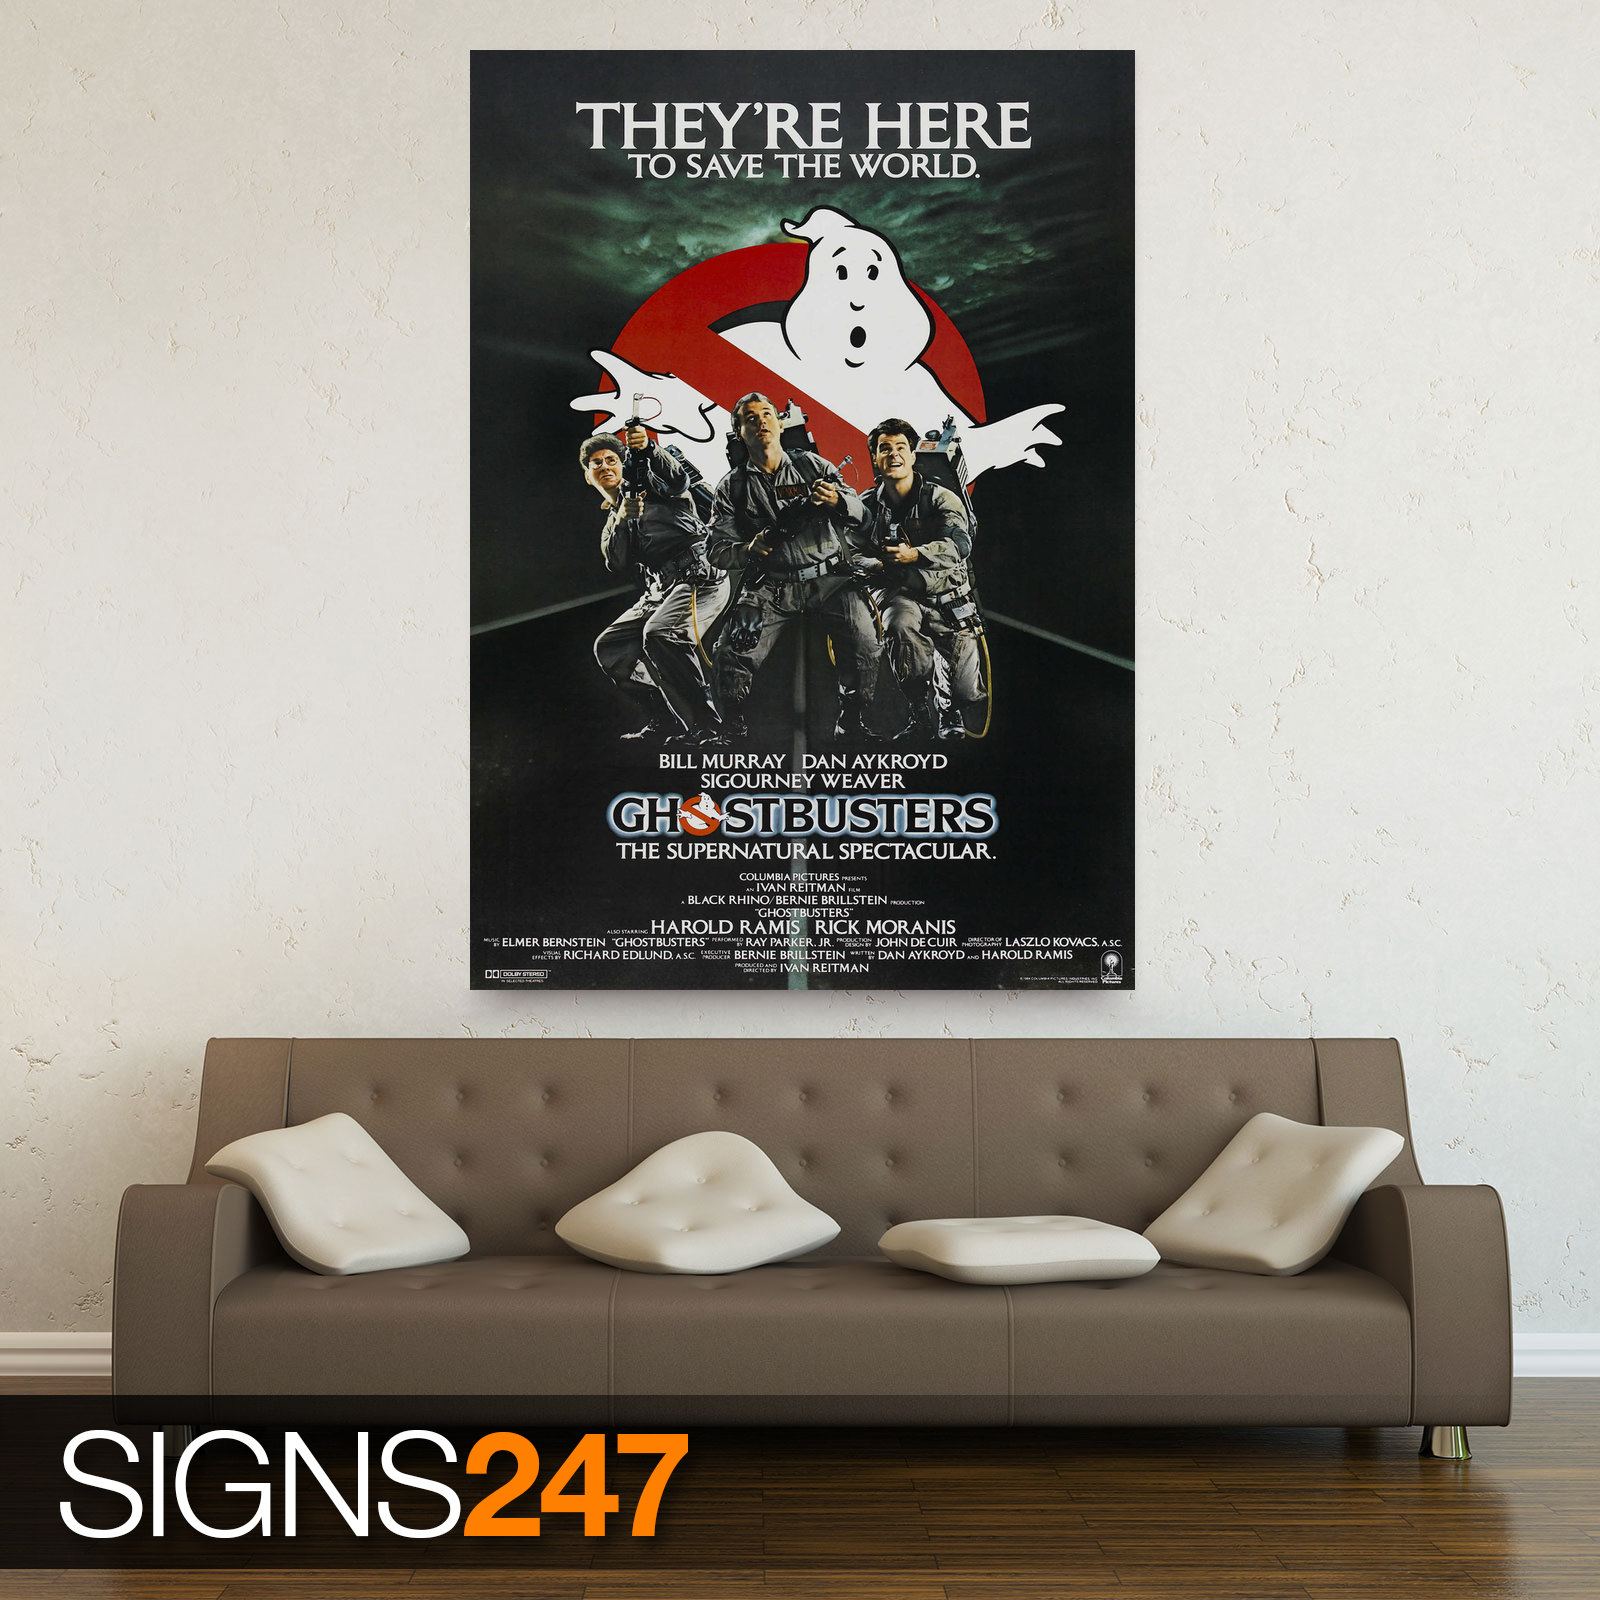 GHOSTBUSTERS-ZZ027-MOVIE-POSTER-Photo-Picture-Poster-Print-Art-A0-to-A4